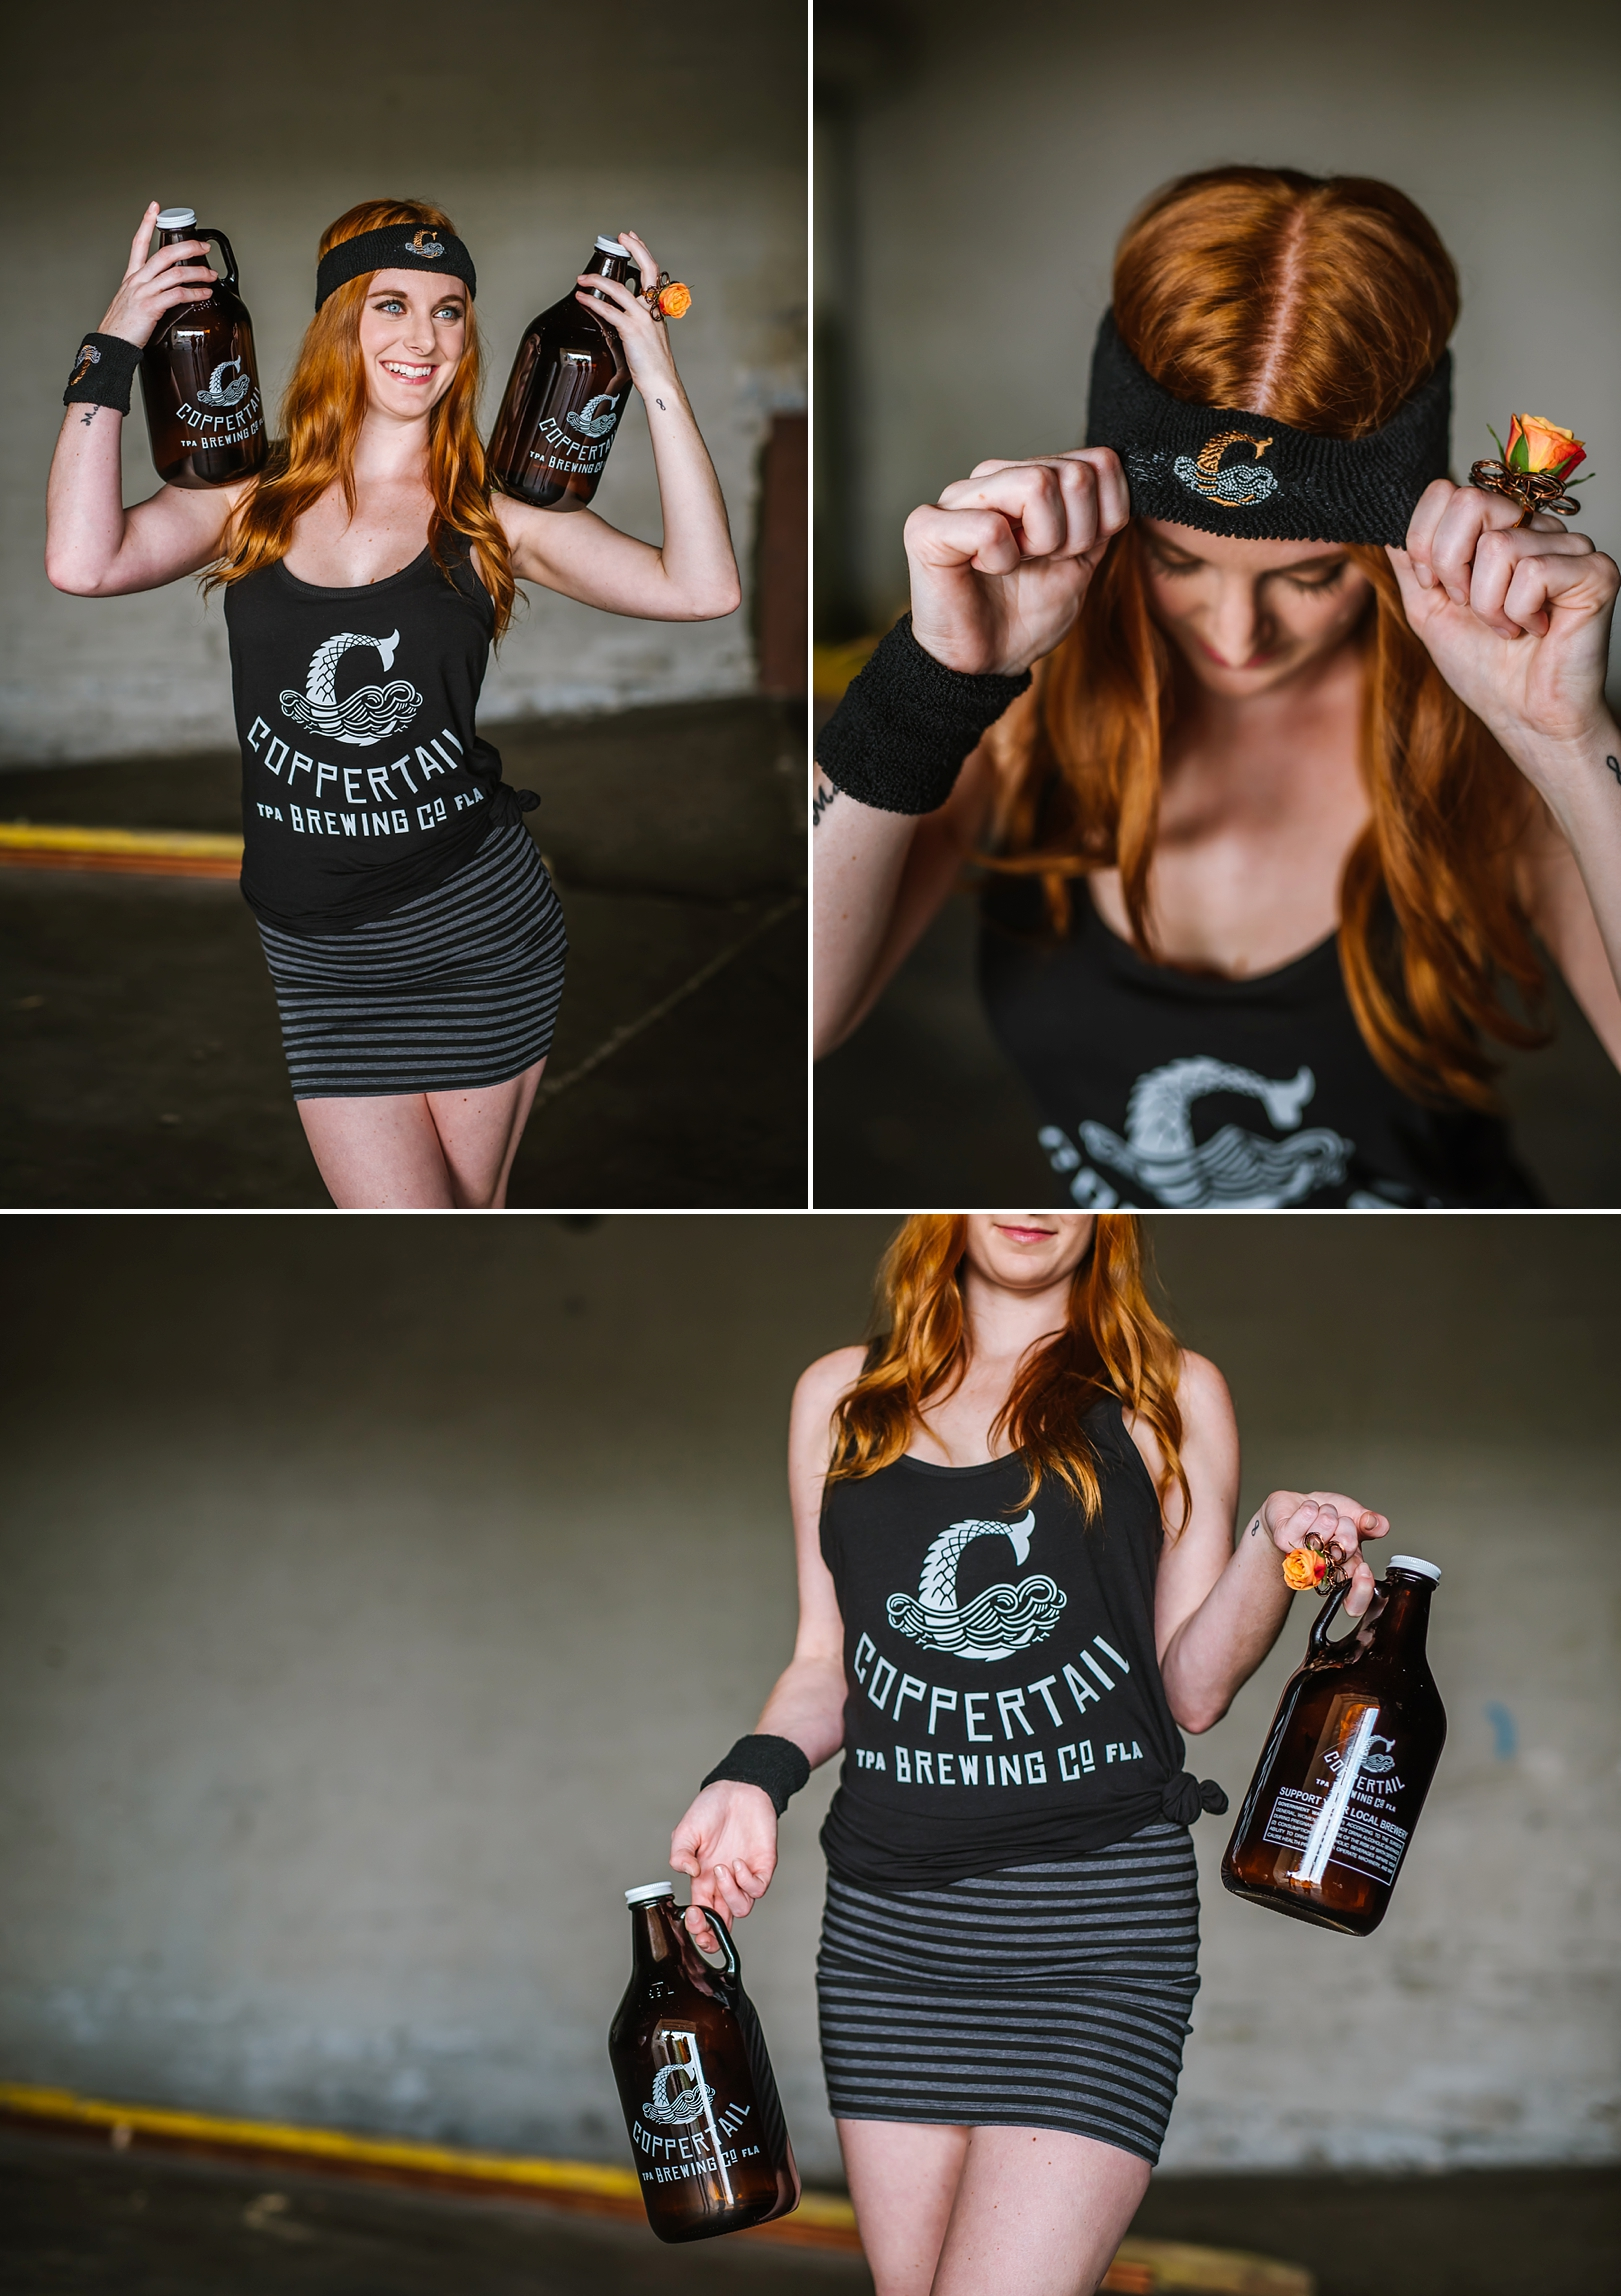 tampa-commercial-photographer-coppertail-brewing-ashlee-hamon_0004.jpg